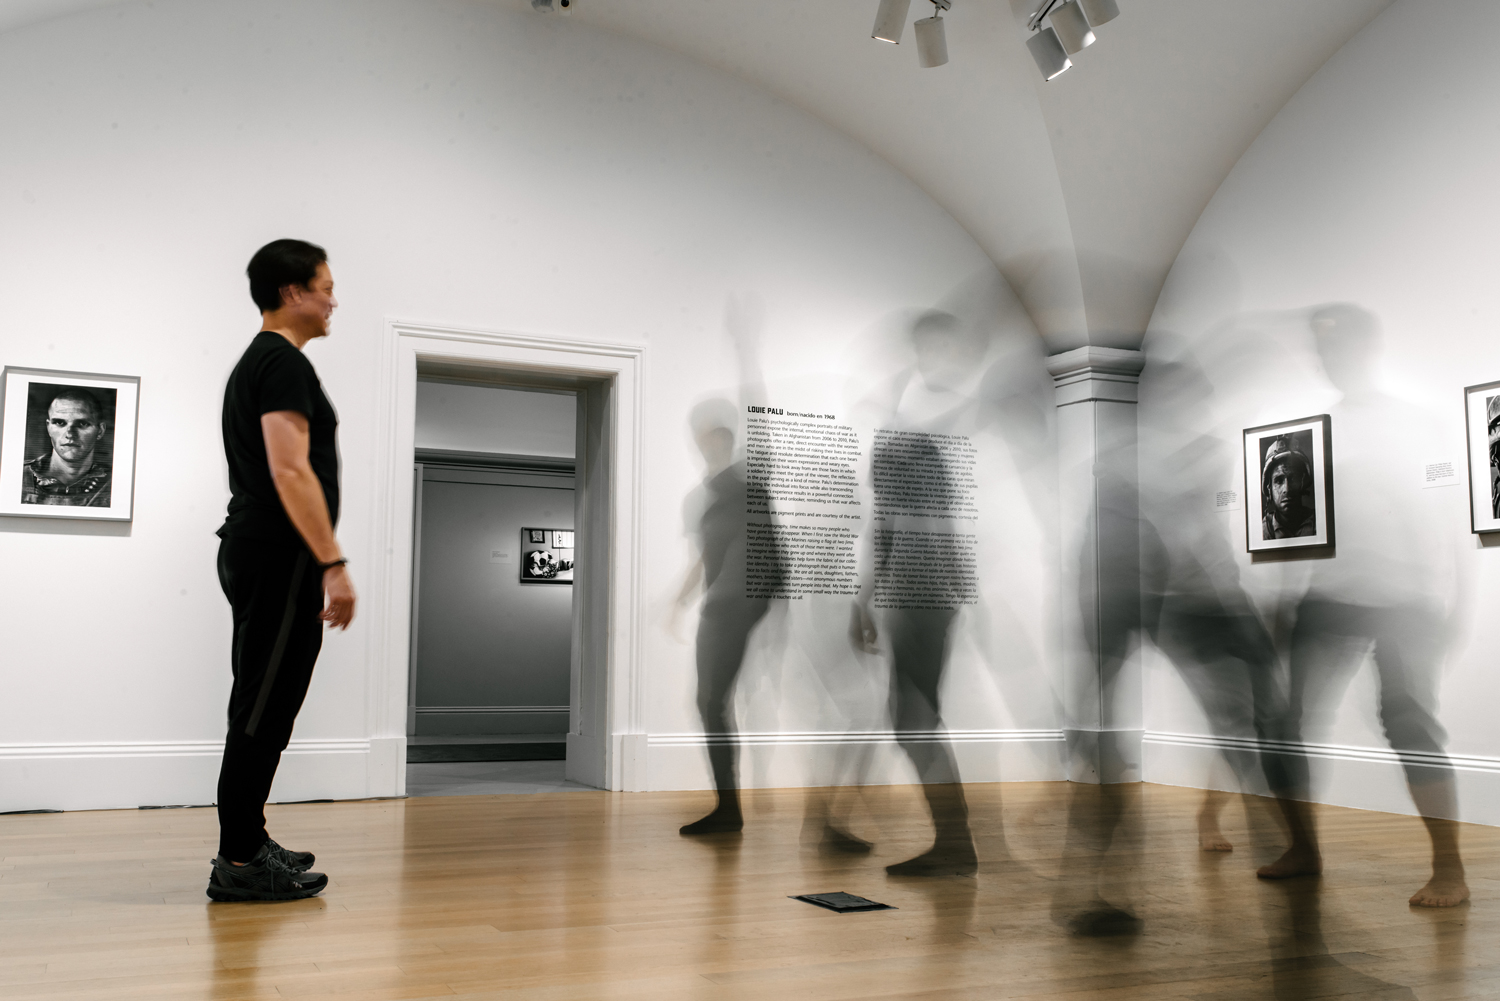 Dancers moving very quickly in a museum gallery